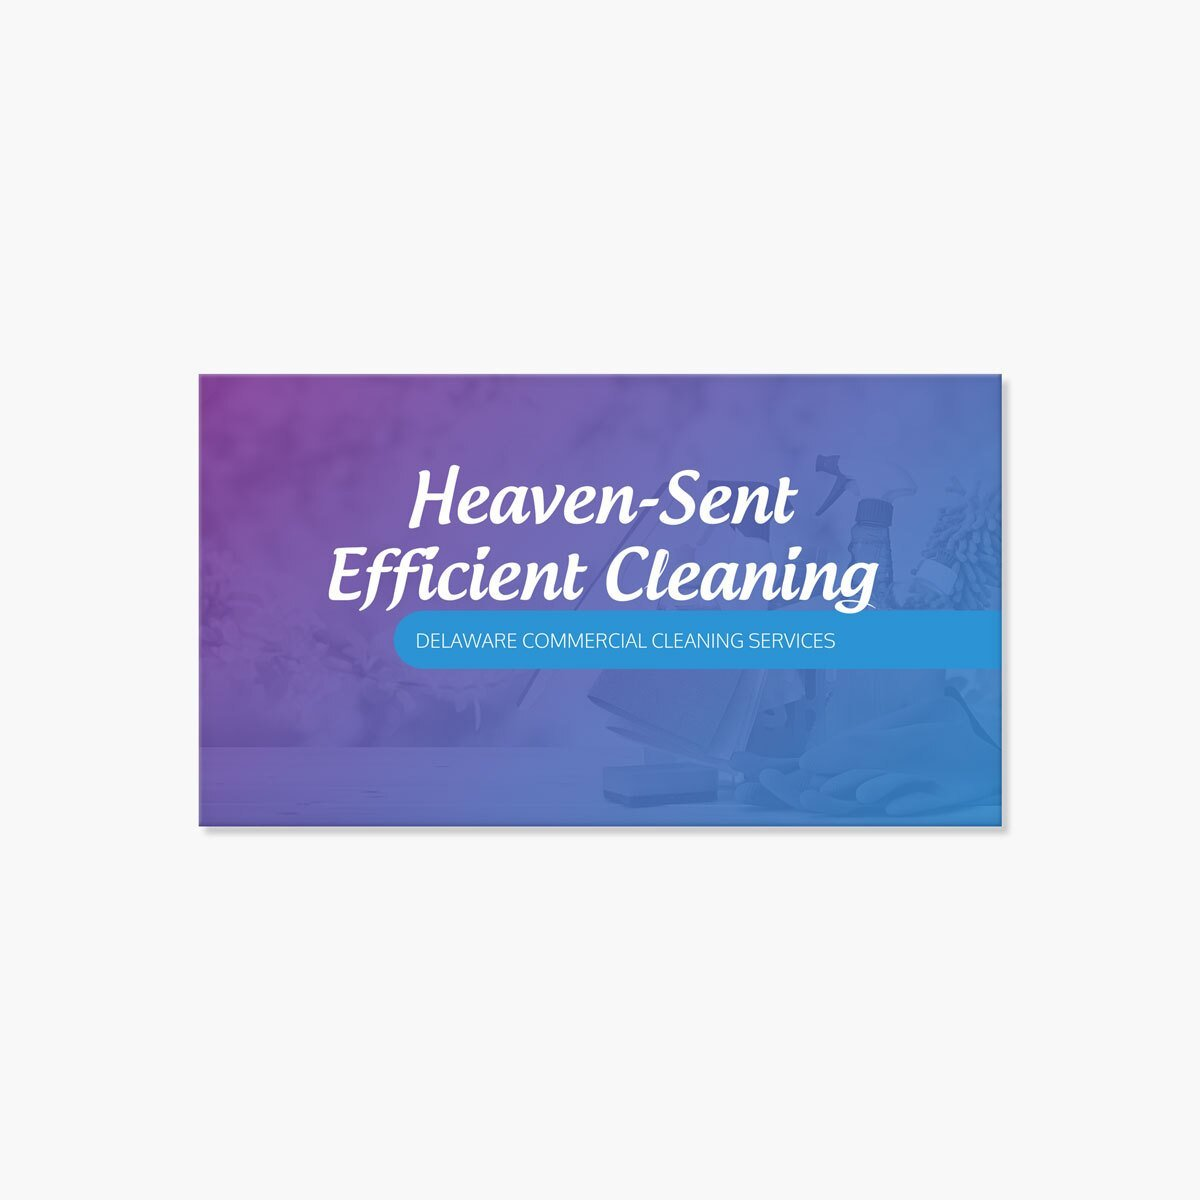 E&V Cleaning Graphic Design by BrandSwan, a graphic design company